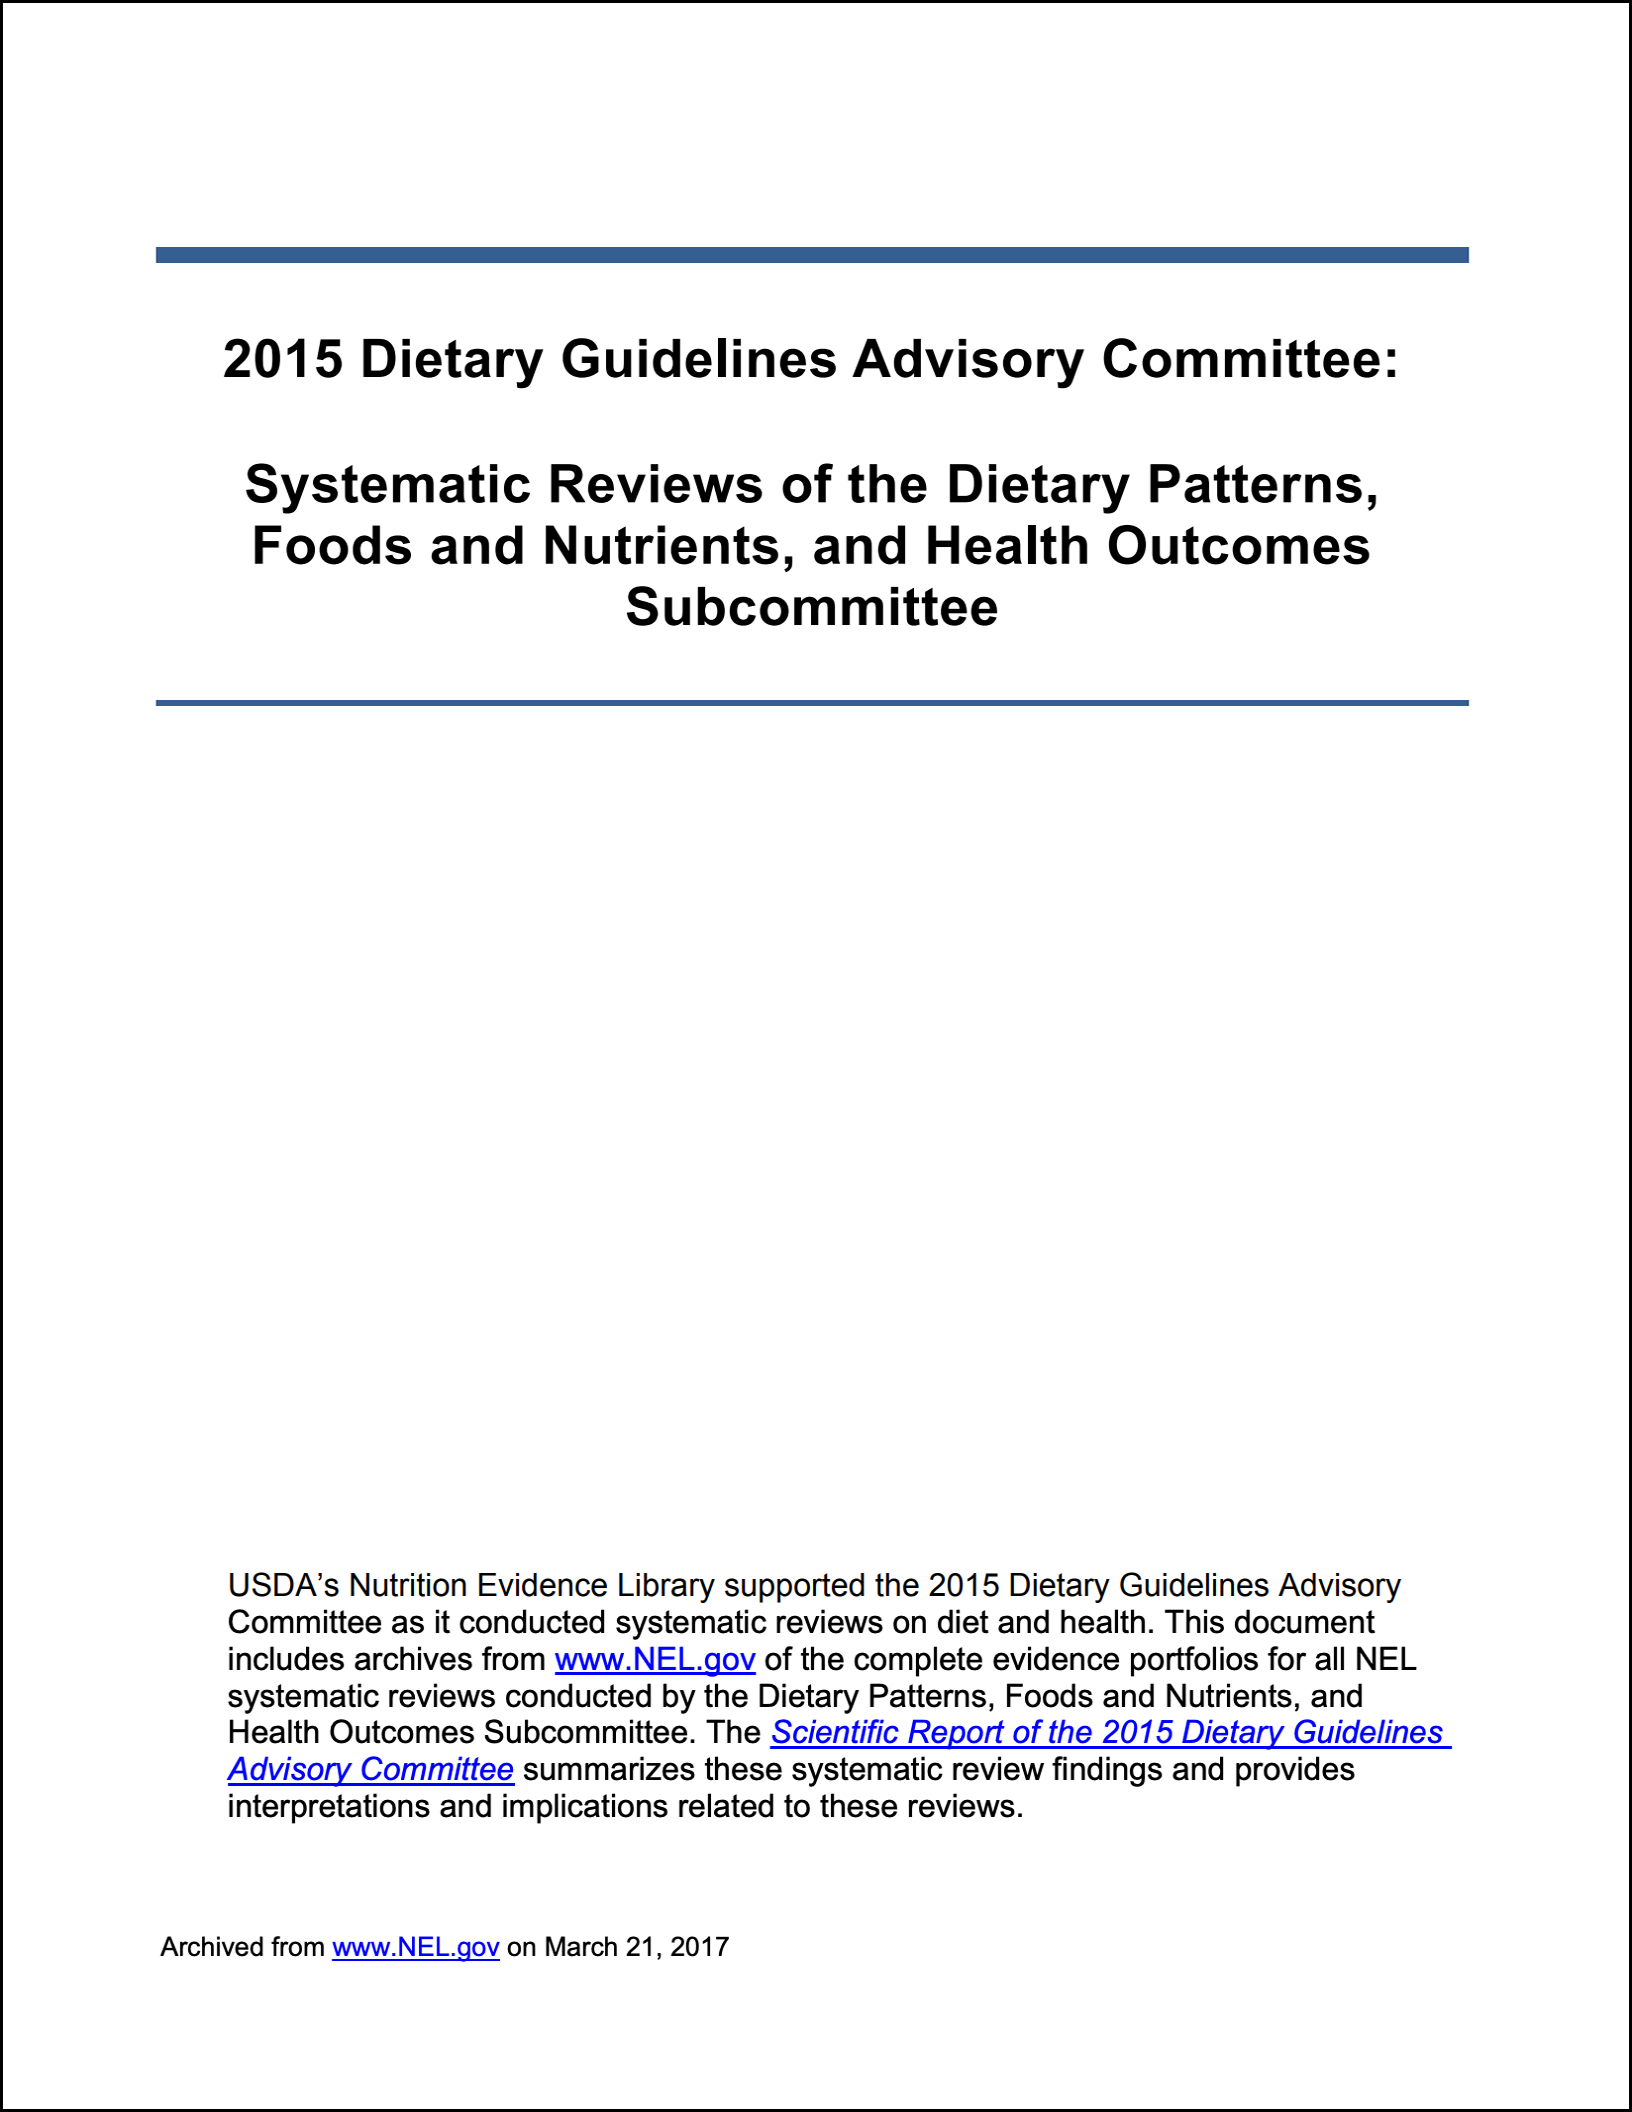 2015 Dietary Patterns, Food and Nutrients, and Health Outcomes Subcommittee.png